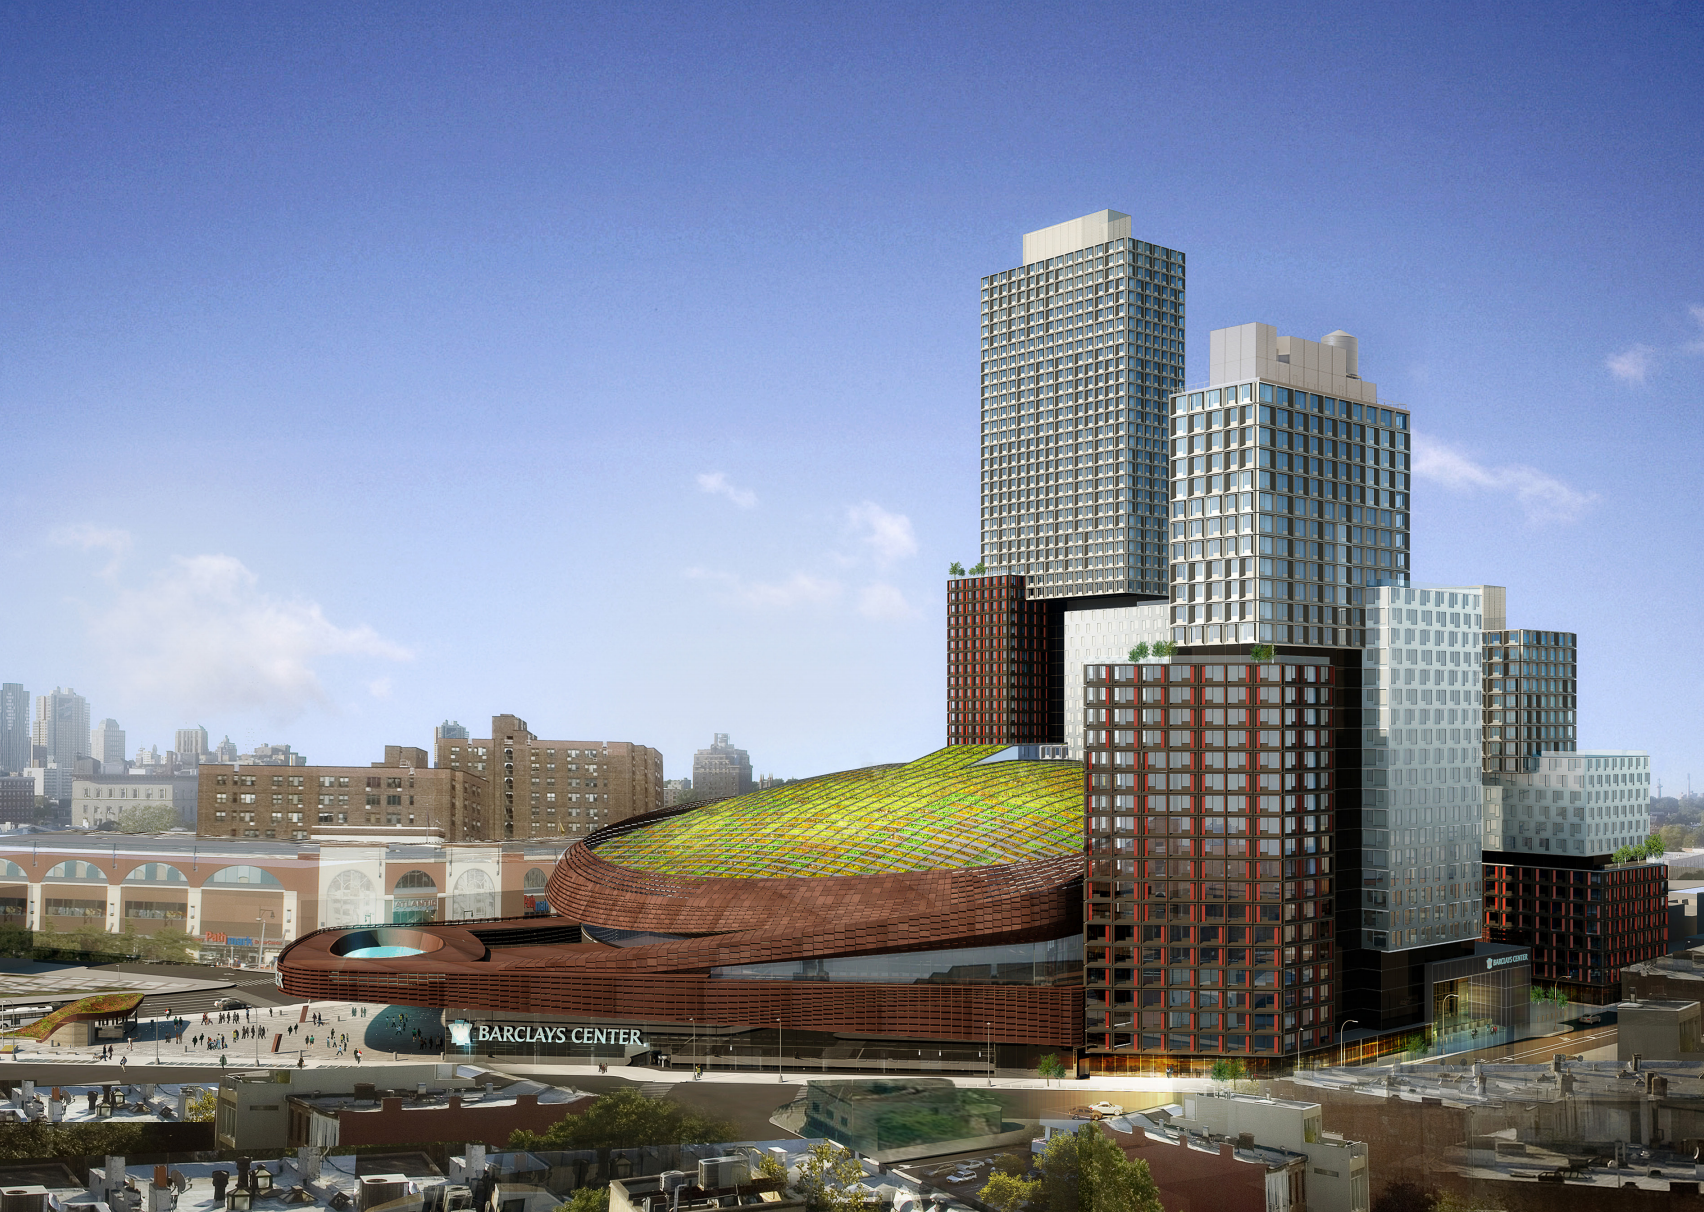 38 Sixth Avenue and the Barlcays Center, rendering by SHoP Architects